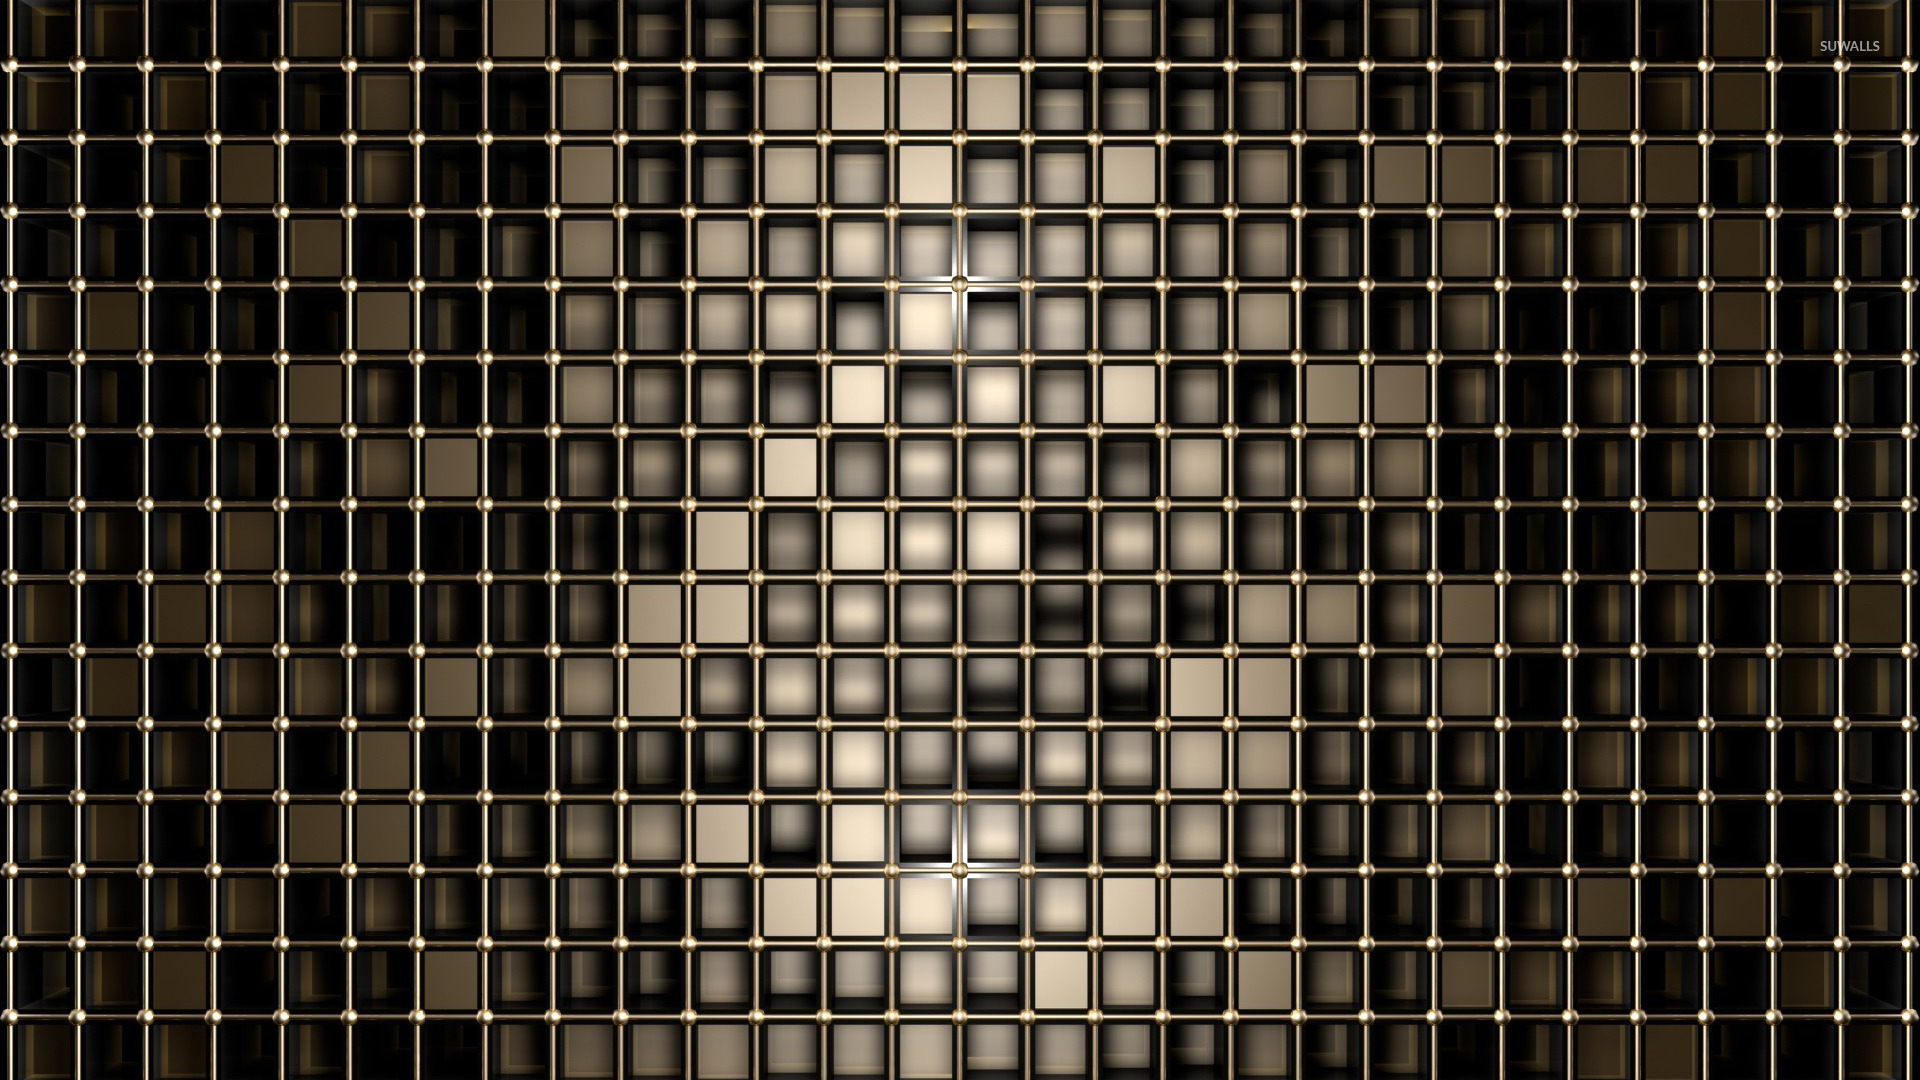 Bronze Squares Wallpaper Abstract Wallpapers 23248 HD Wallpapers Download Free Images Wallpaper [1000image.com]